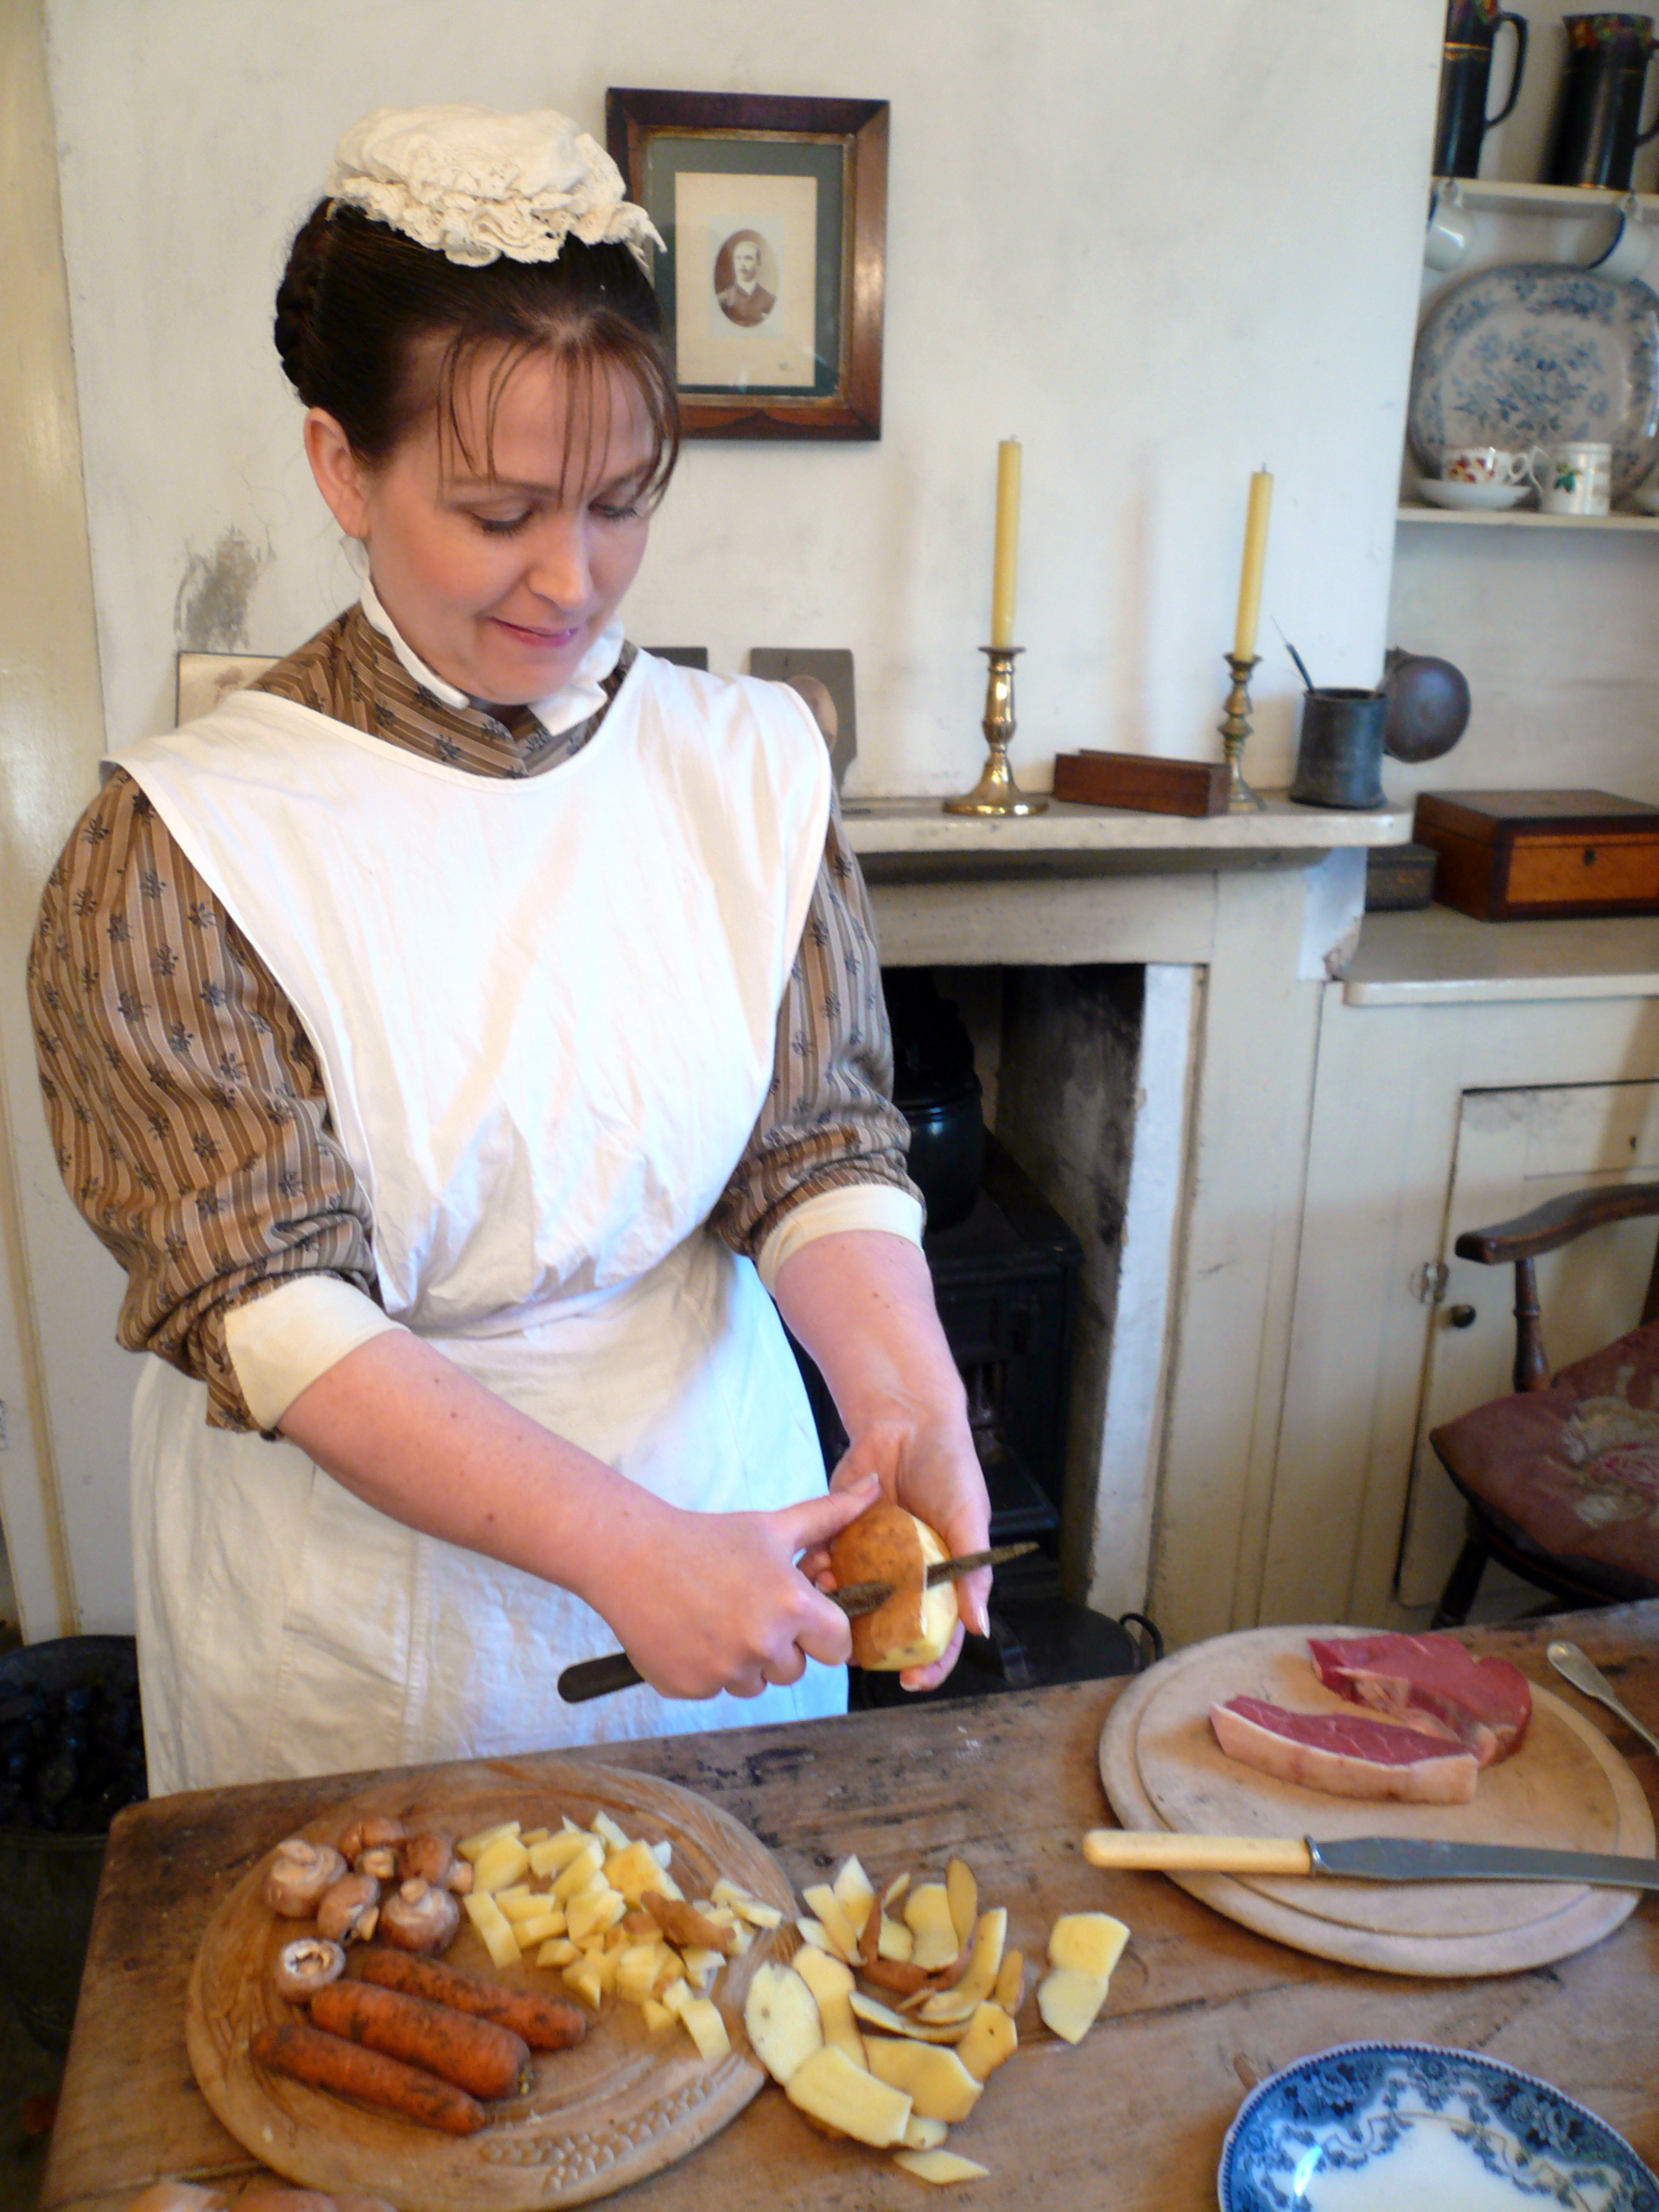 Victorian cook peeling potatoes